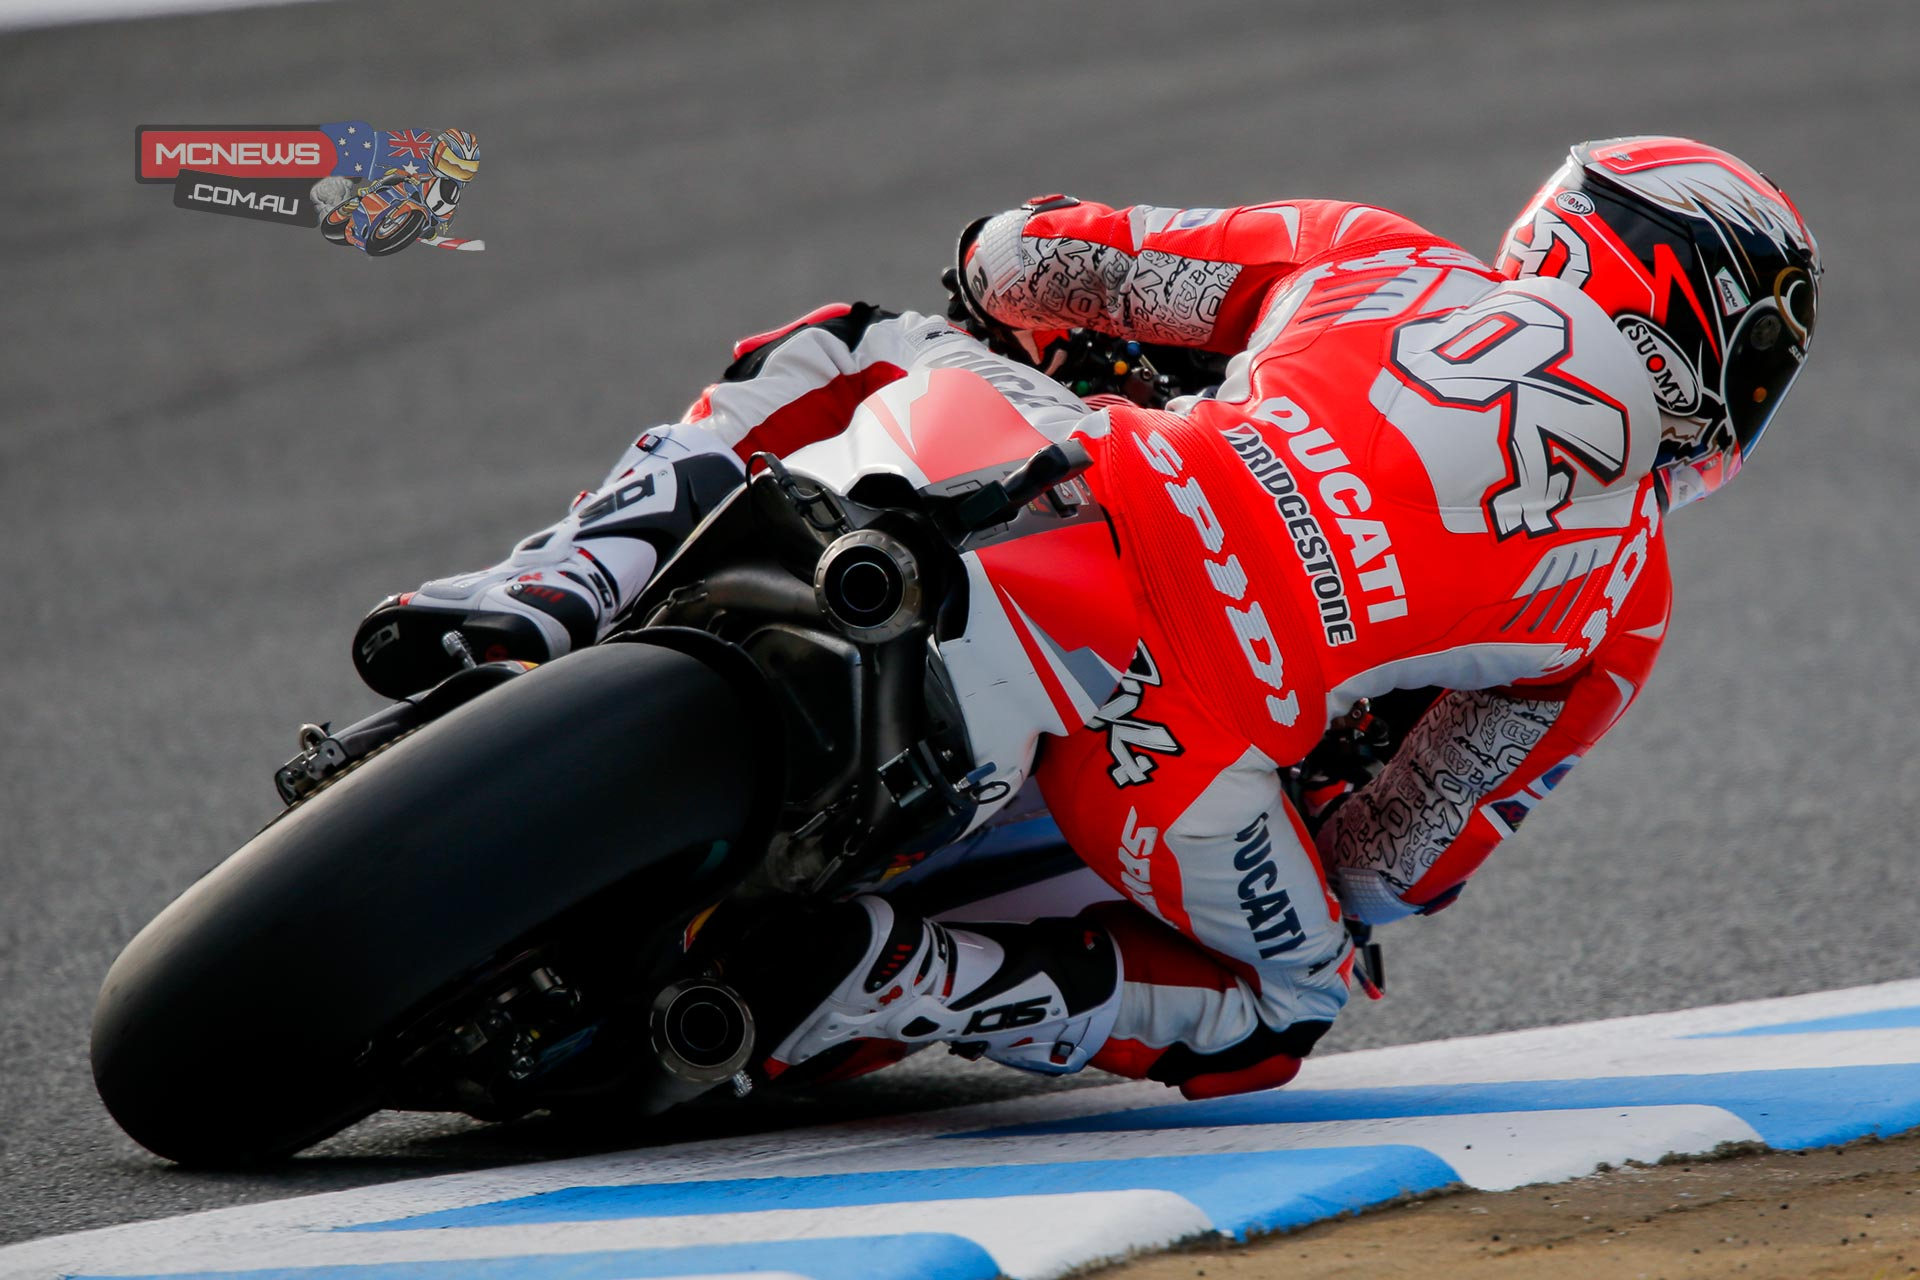 The MotoGP™ FP2 session at Motegi saw Andrea Dovizioso (Ducati Team) set the standard on the first day of the Motul Grand Prix of Japan, with Jorge Lorenzo and Stefan Bradl also amongst the leading trio.